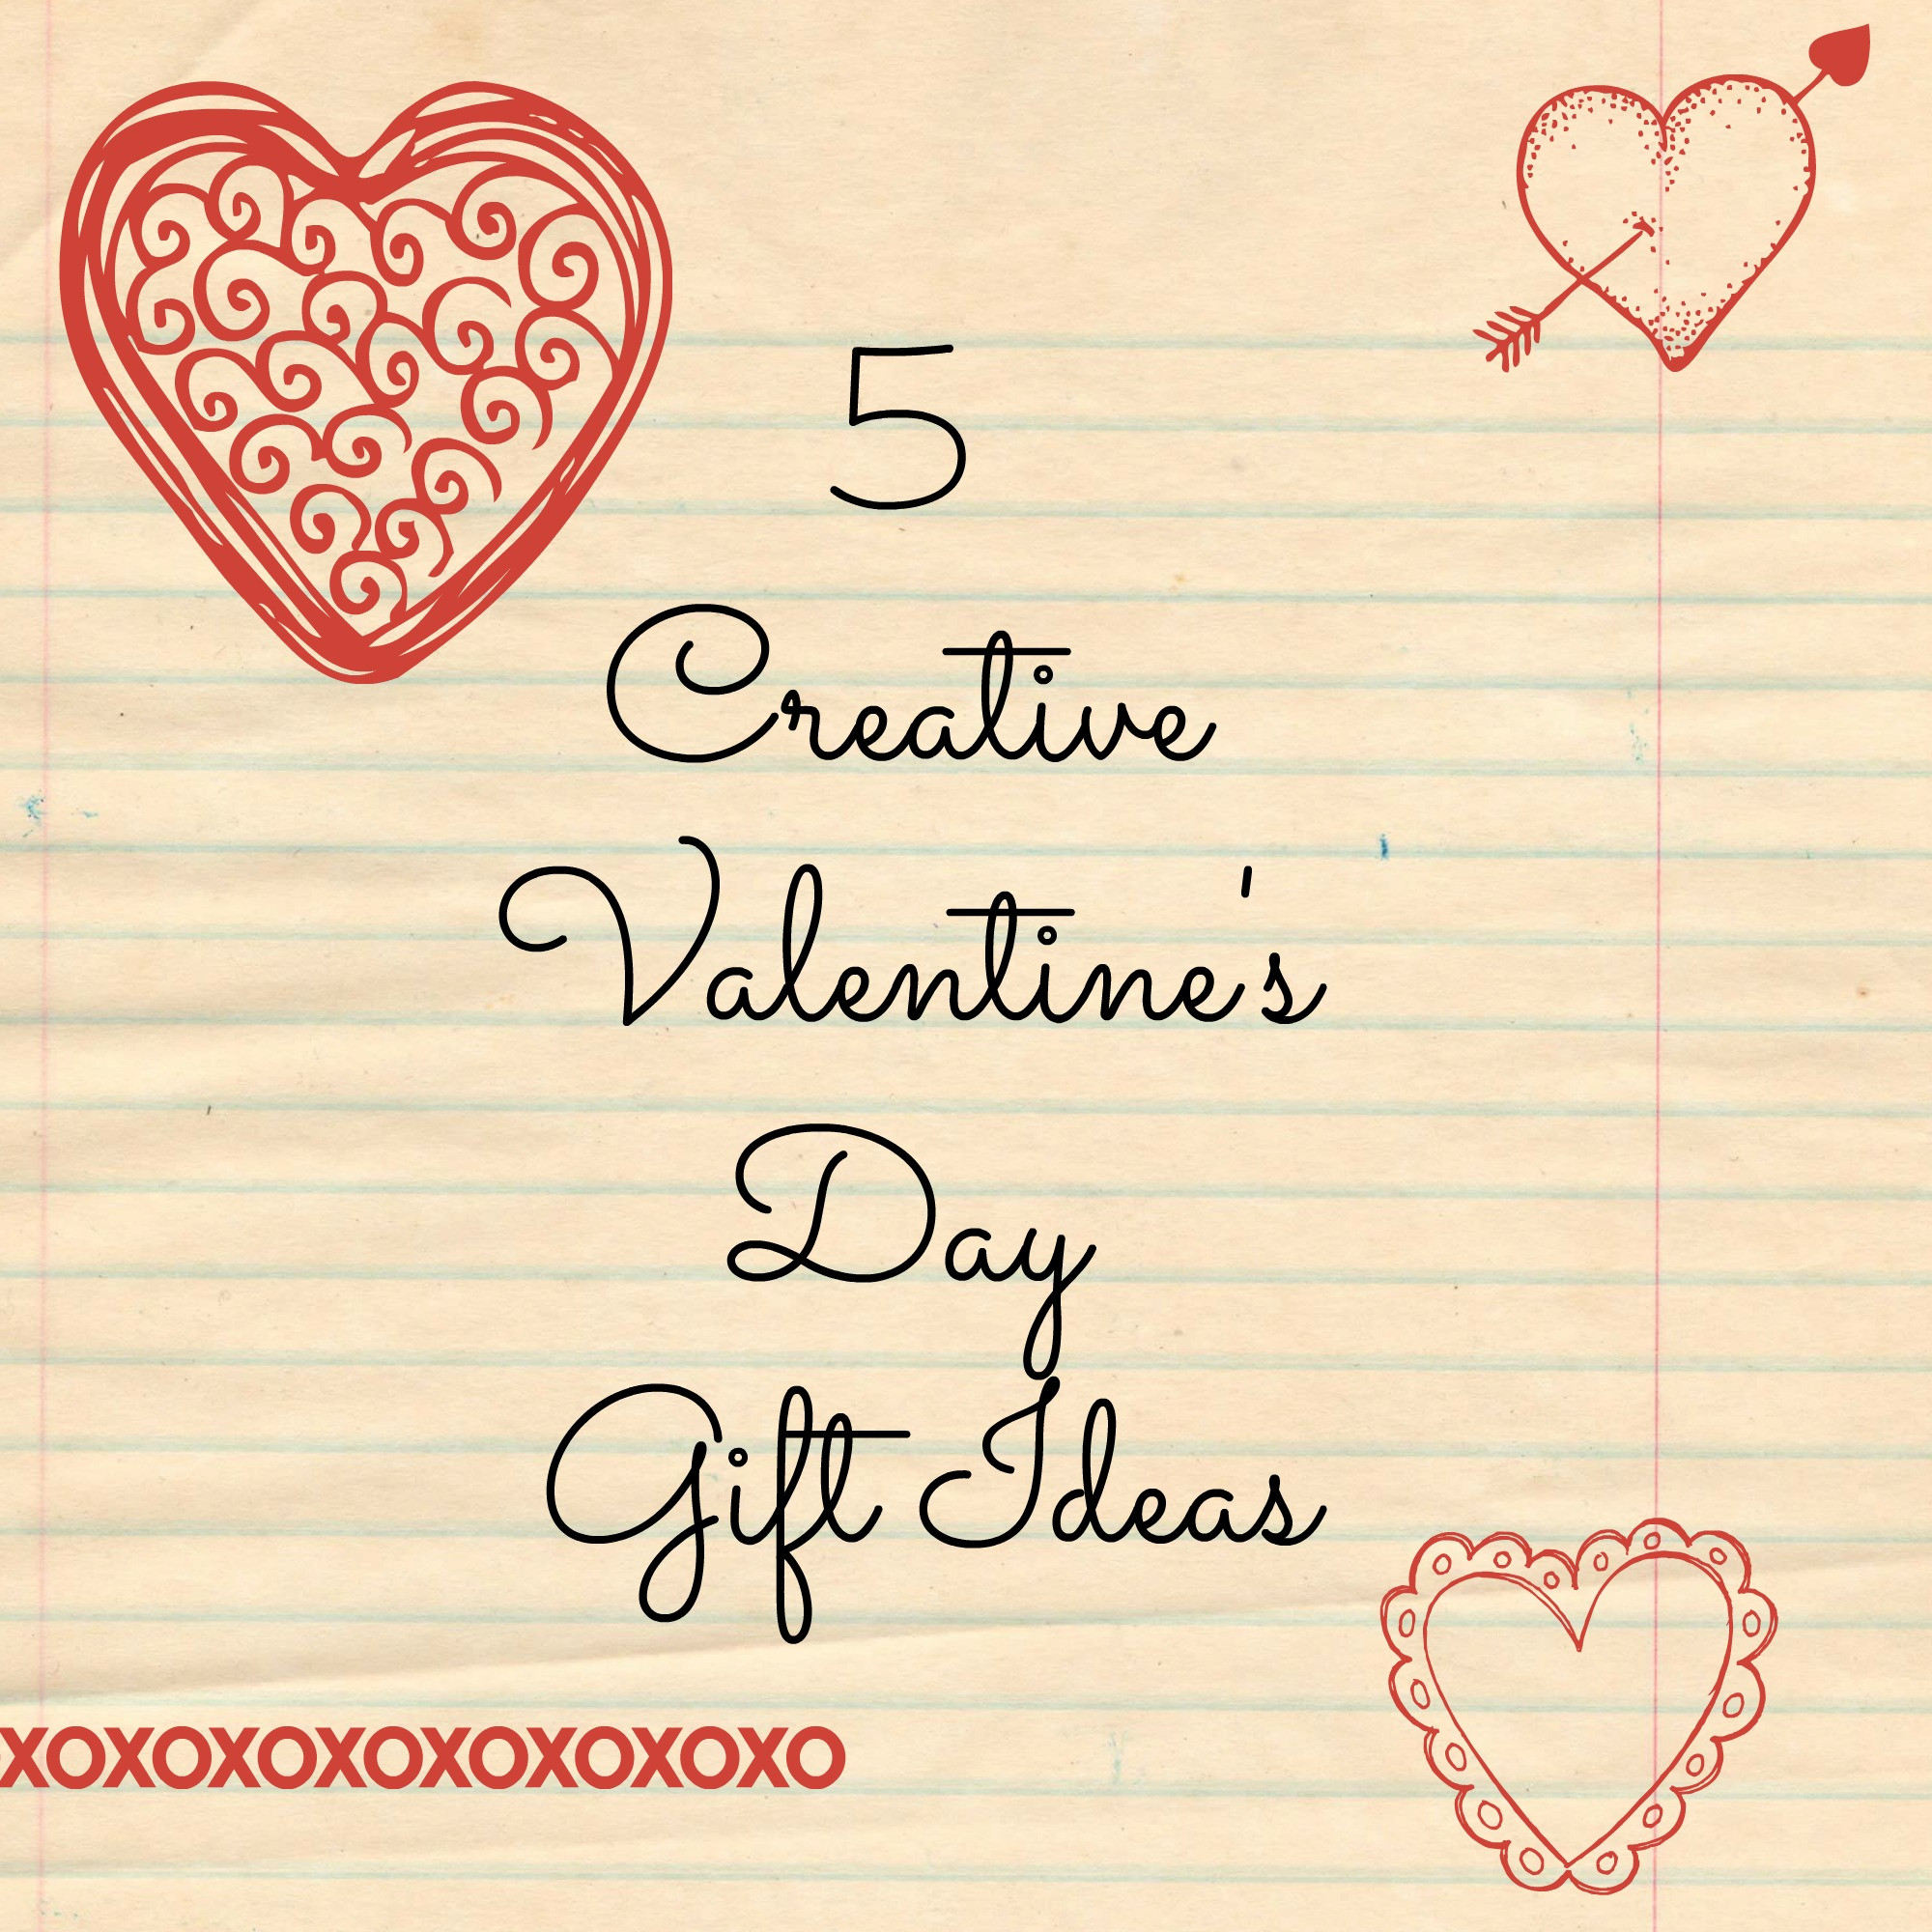 Valentine Gift For Husband Ideas  5 Creative Valentine's Day Gift Ideas